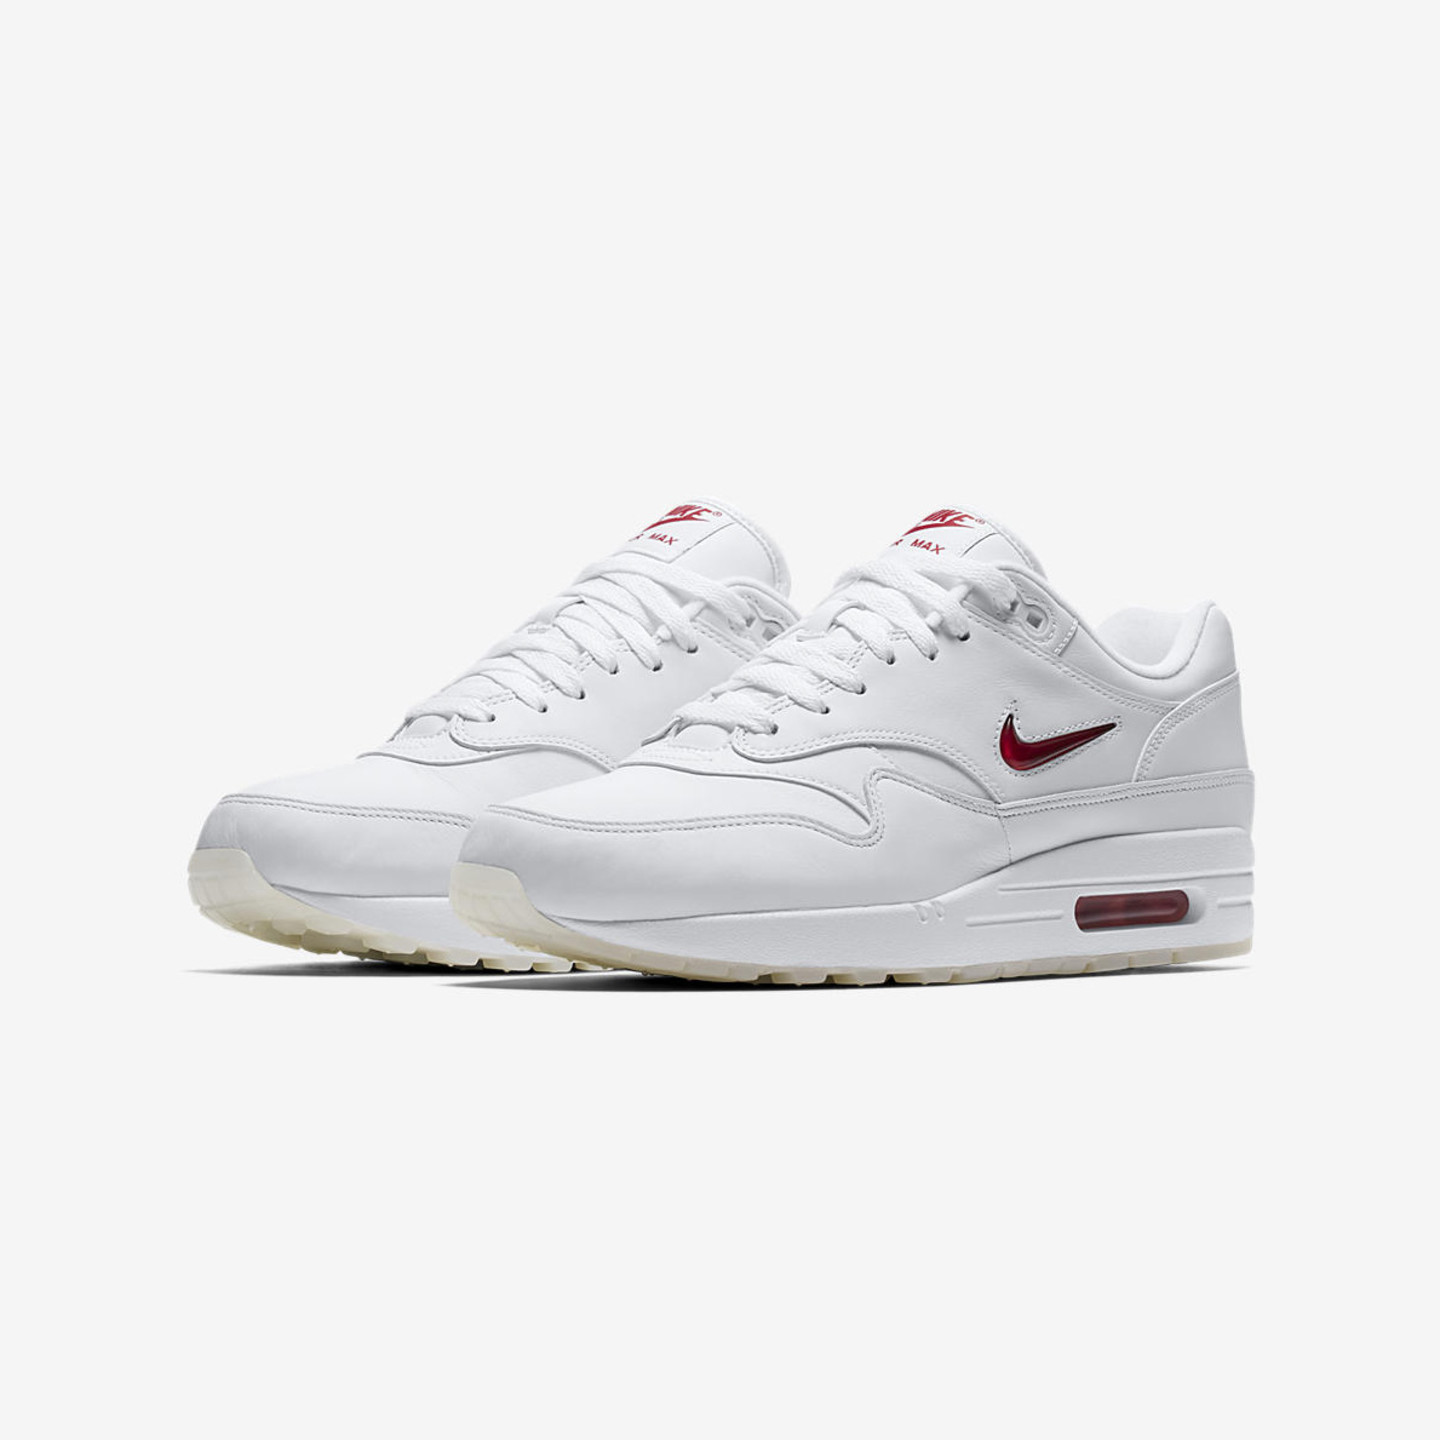 Nike Air Max 1 Jewel QS 'Rare Ruby' White / University Red 918354-104